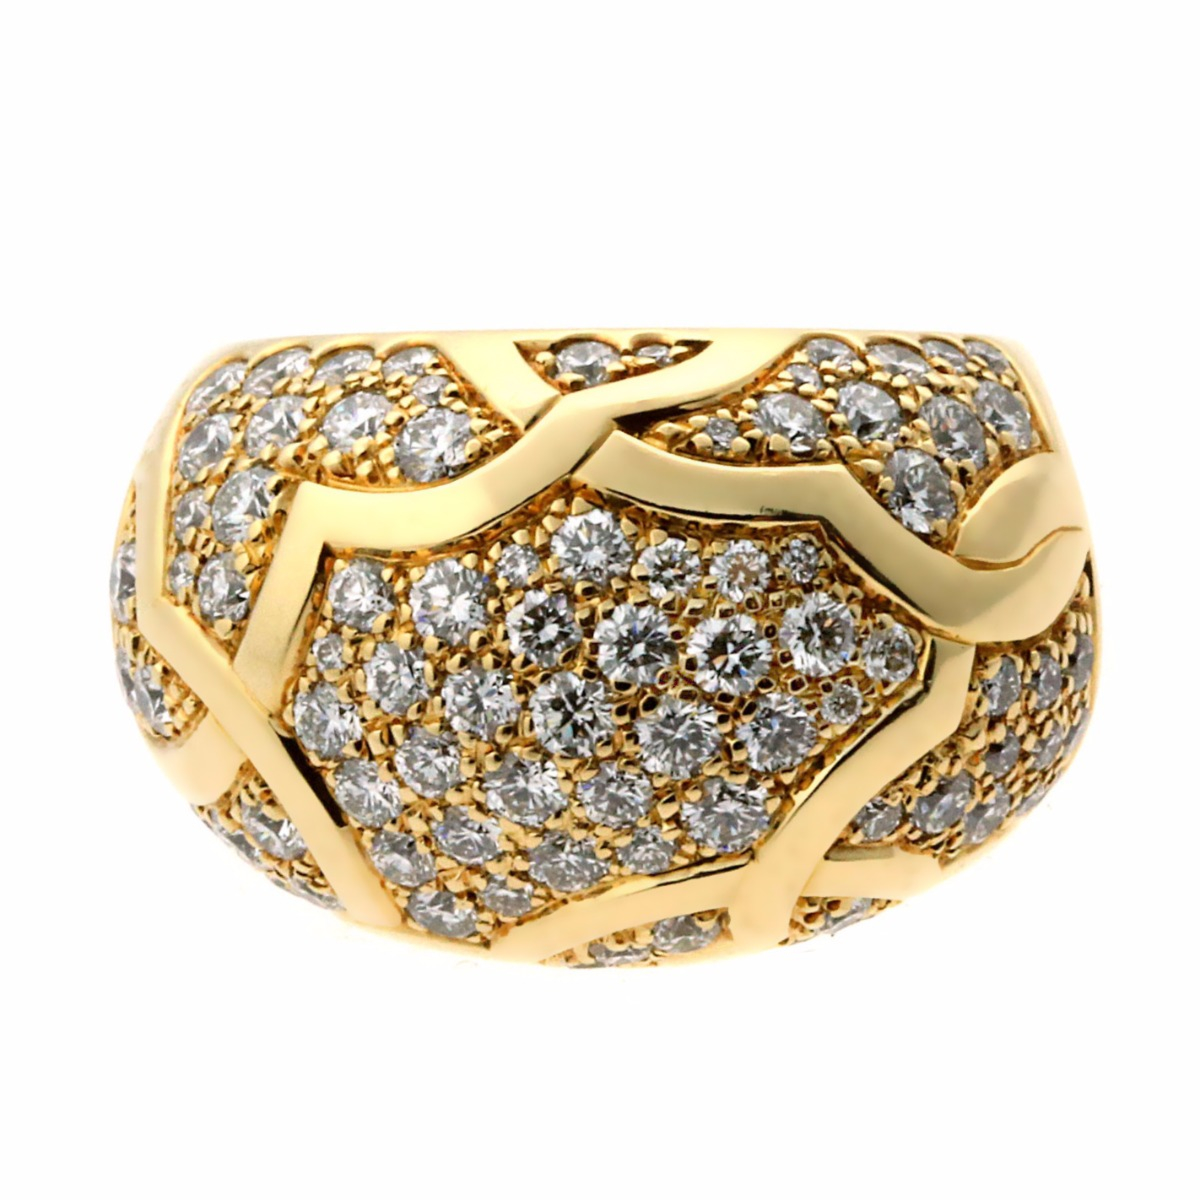 Chanel Camellia Flower Diamond Gold Cocktail Ring - Chanel Jewelry